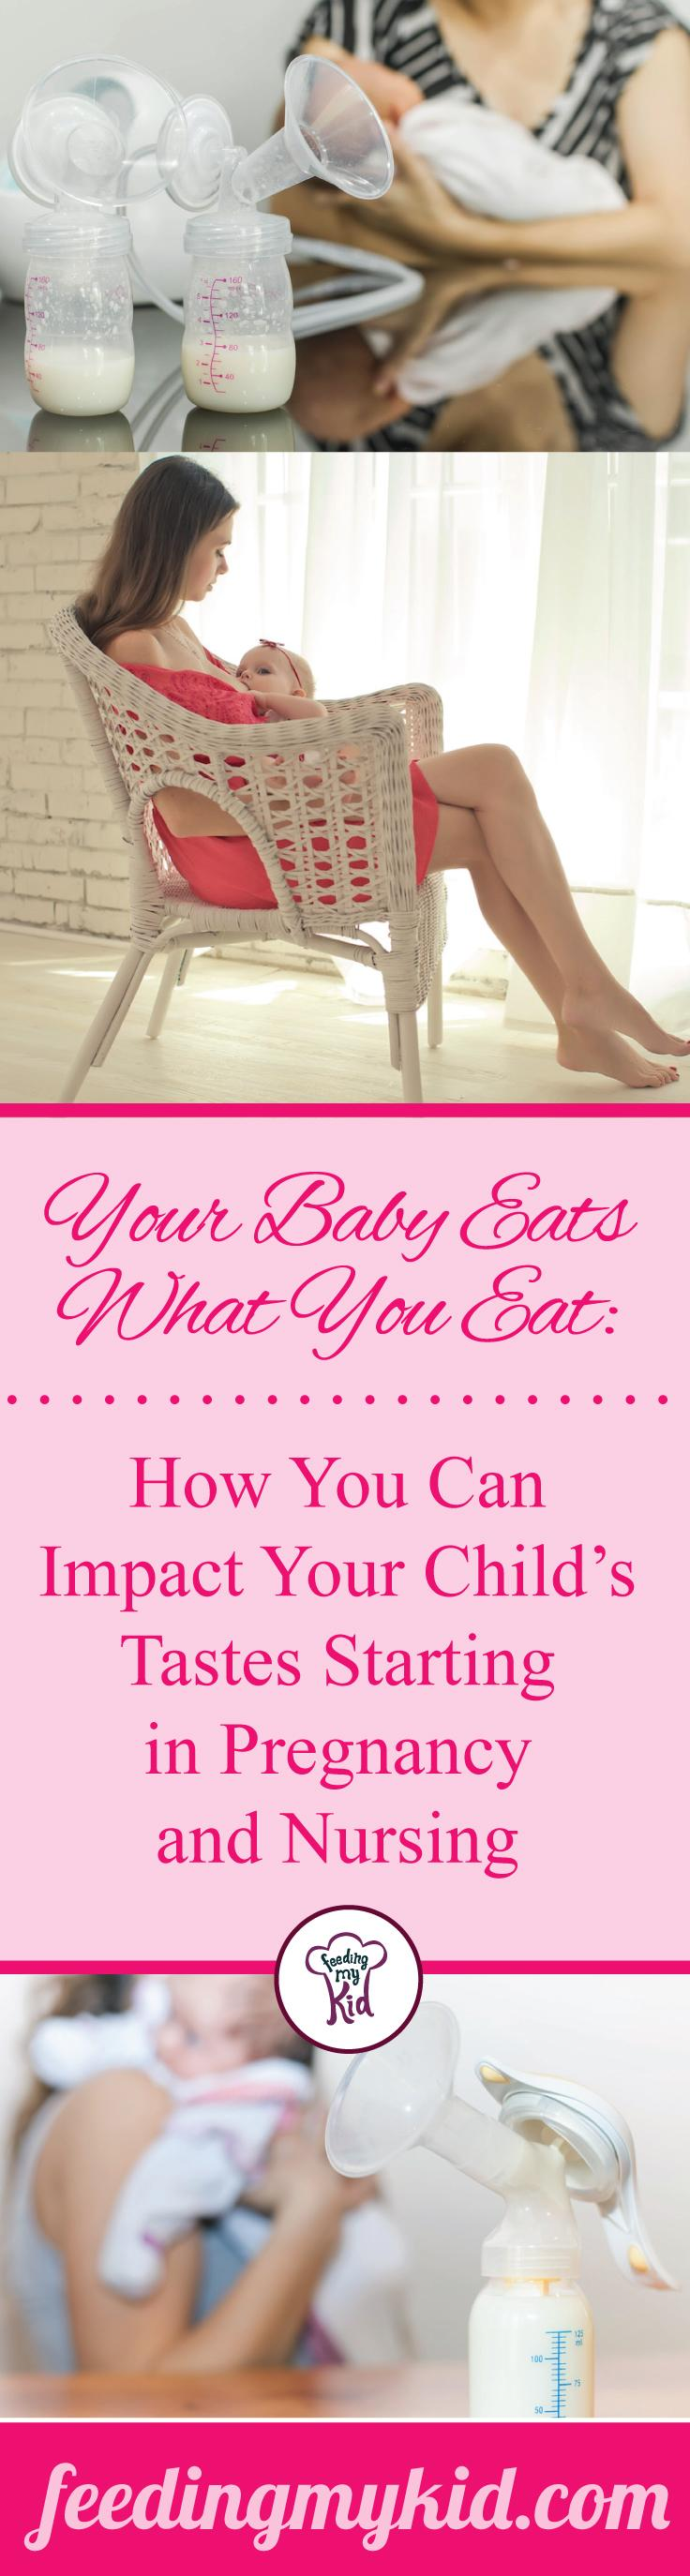 Your Baby Eats What You Eat: How You Can Impact Your Child's Tastes Starting in Pregnancy and Nursing - That's right! In fact, the food you eat when you are nursing can play a big part in whether your child becomes a picky eater or not. You might be thinking, I know a lot of people who breastfed and still have a picky eater.